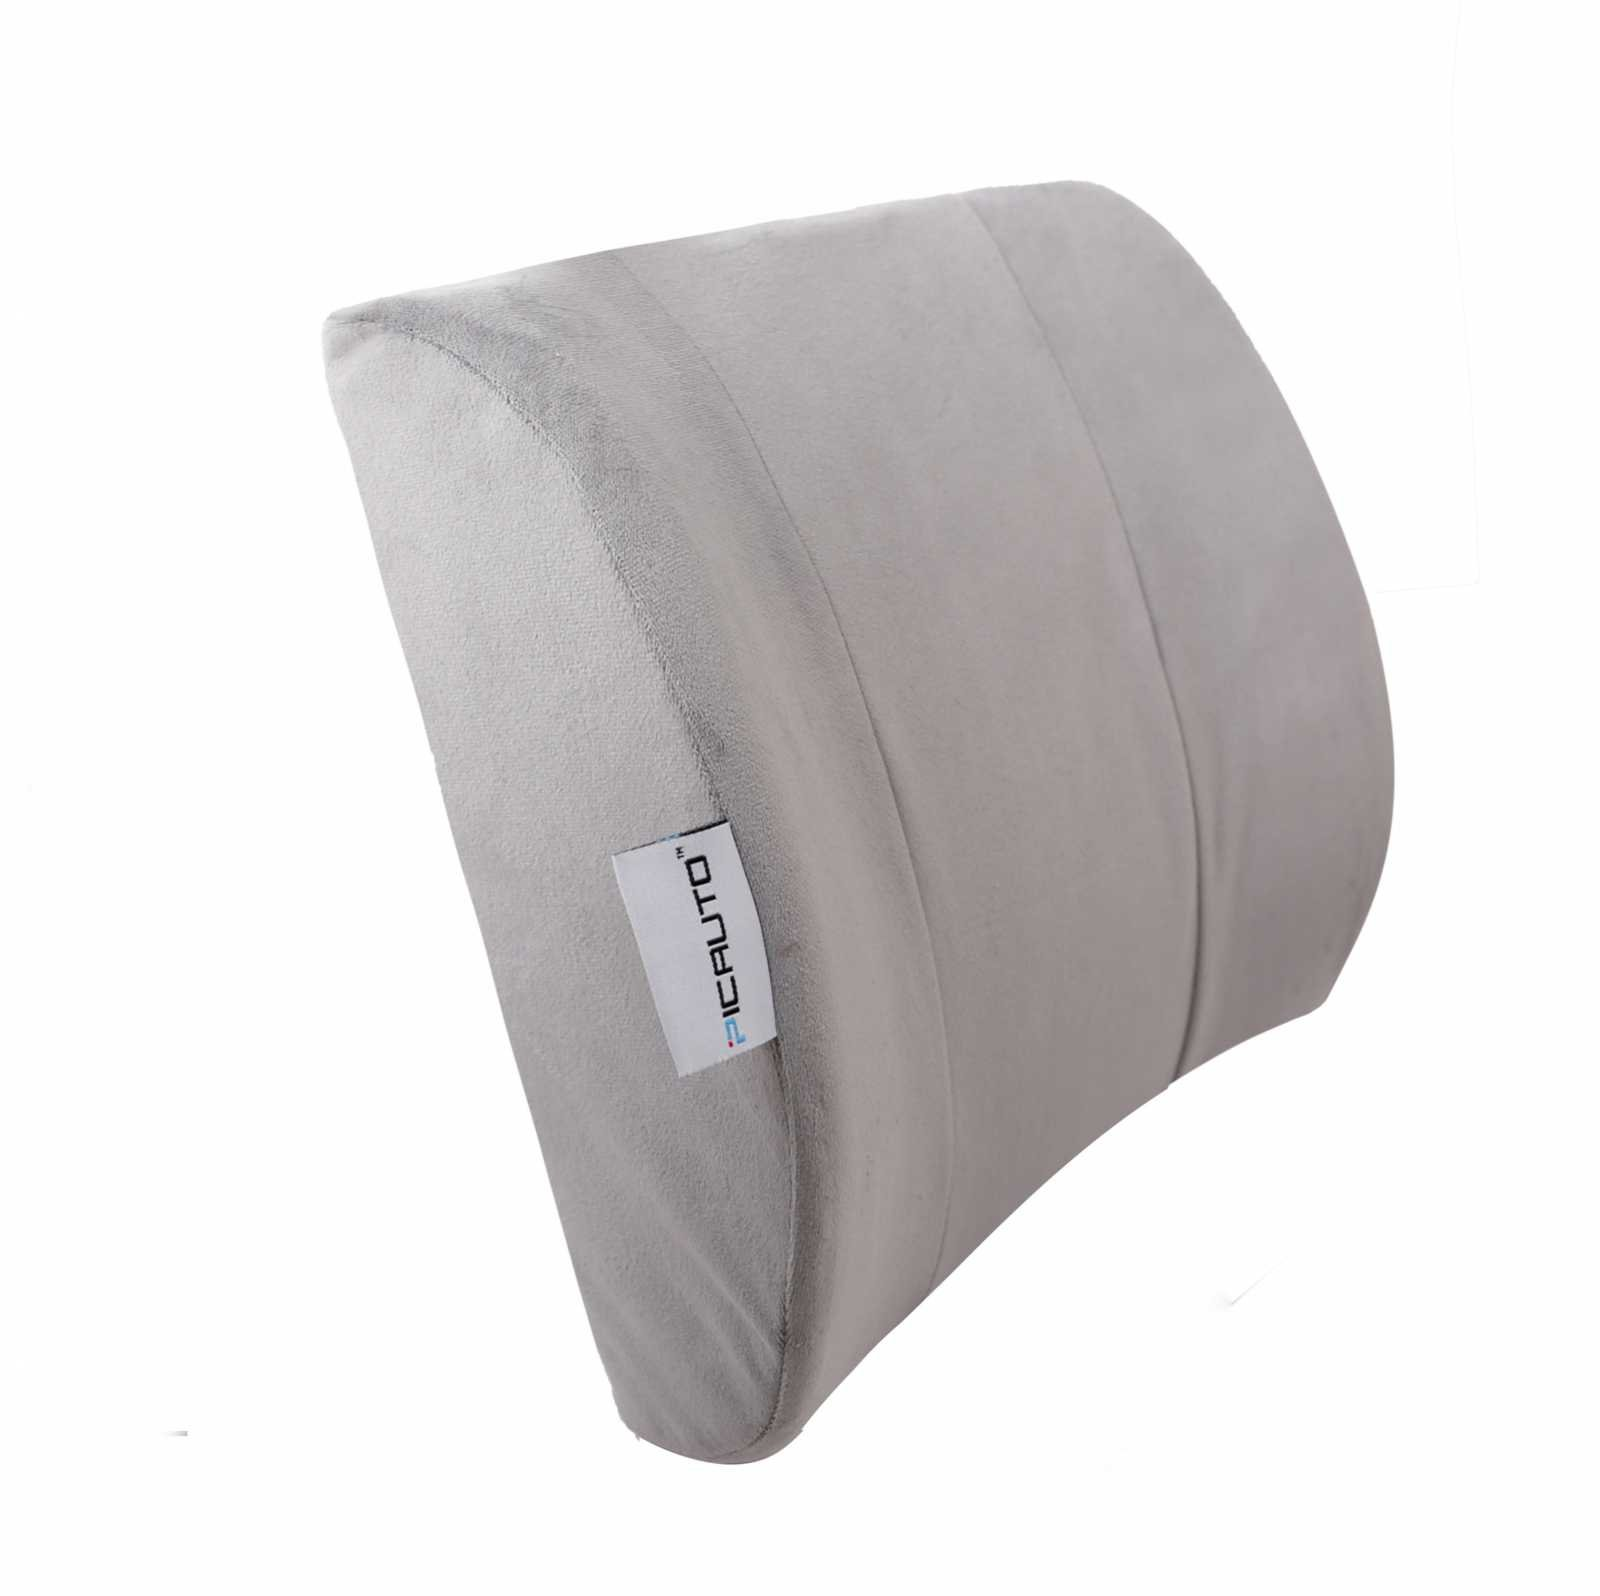 Lumbar Support Cushion Pillow - Orthopedic Design for Lower Back Pain Relief (Gray)